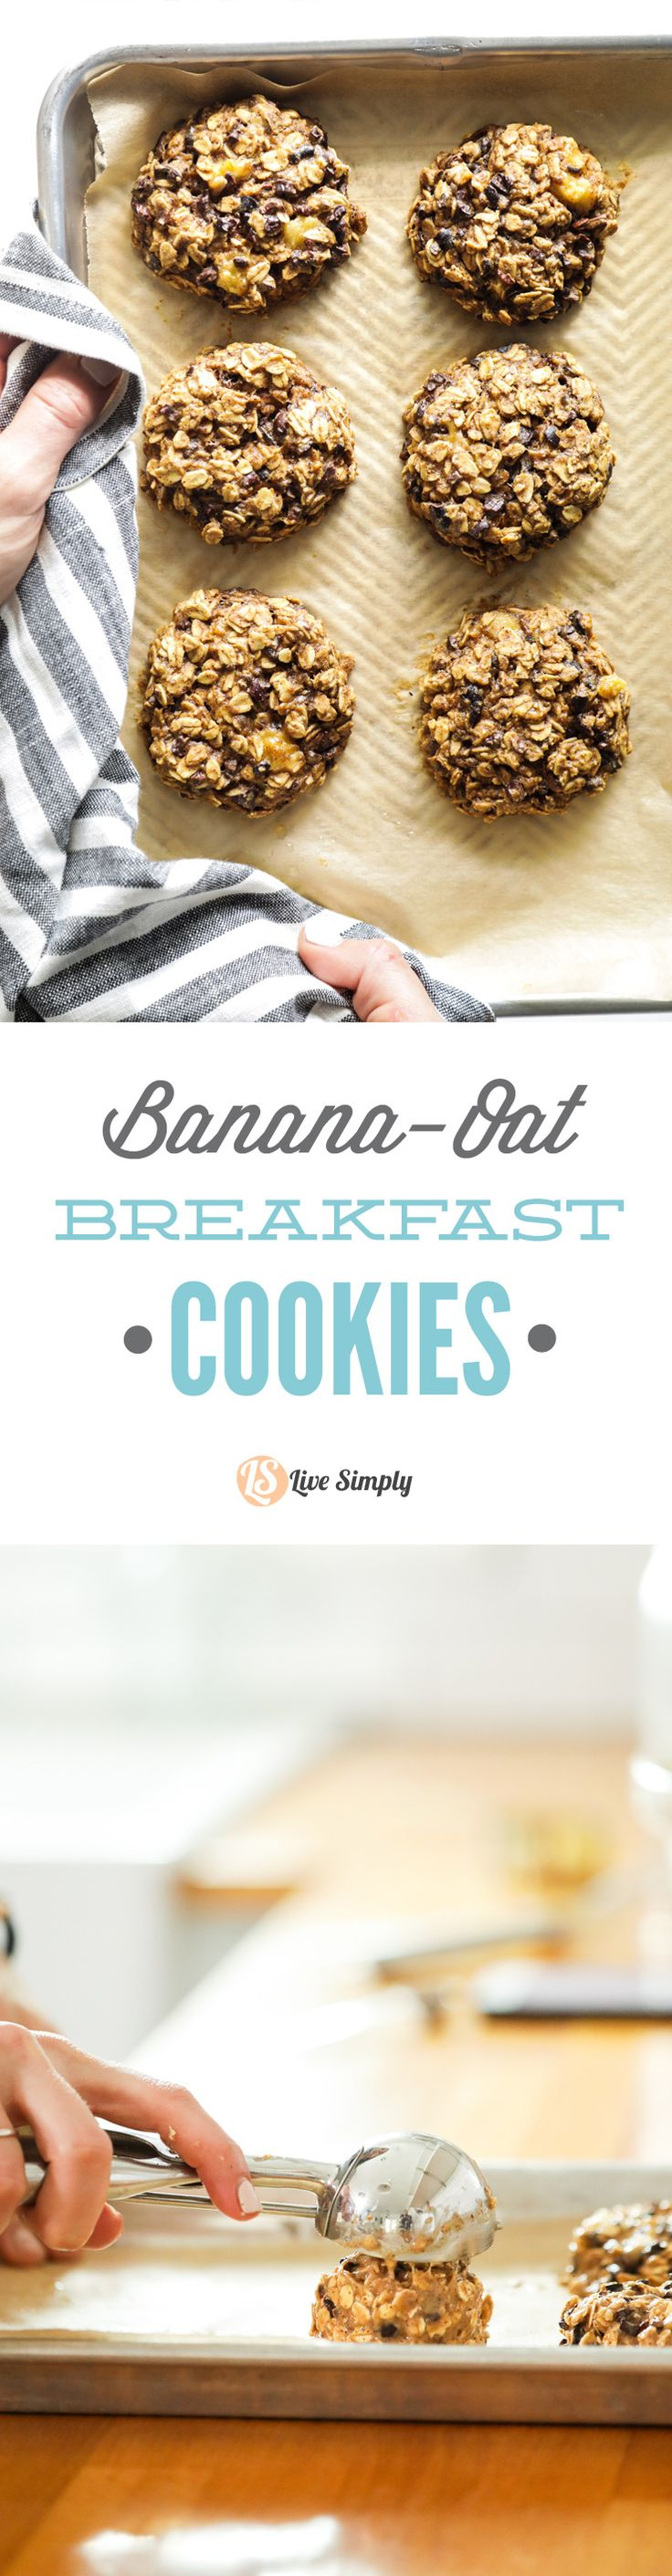 So good! Dairy-free and egg free breakfast or snack cookies. Just like banana bread but better, and in cookie form.